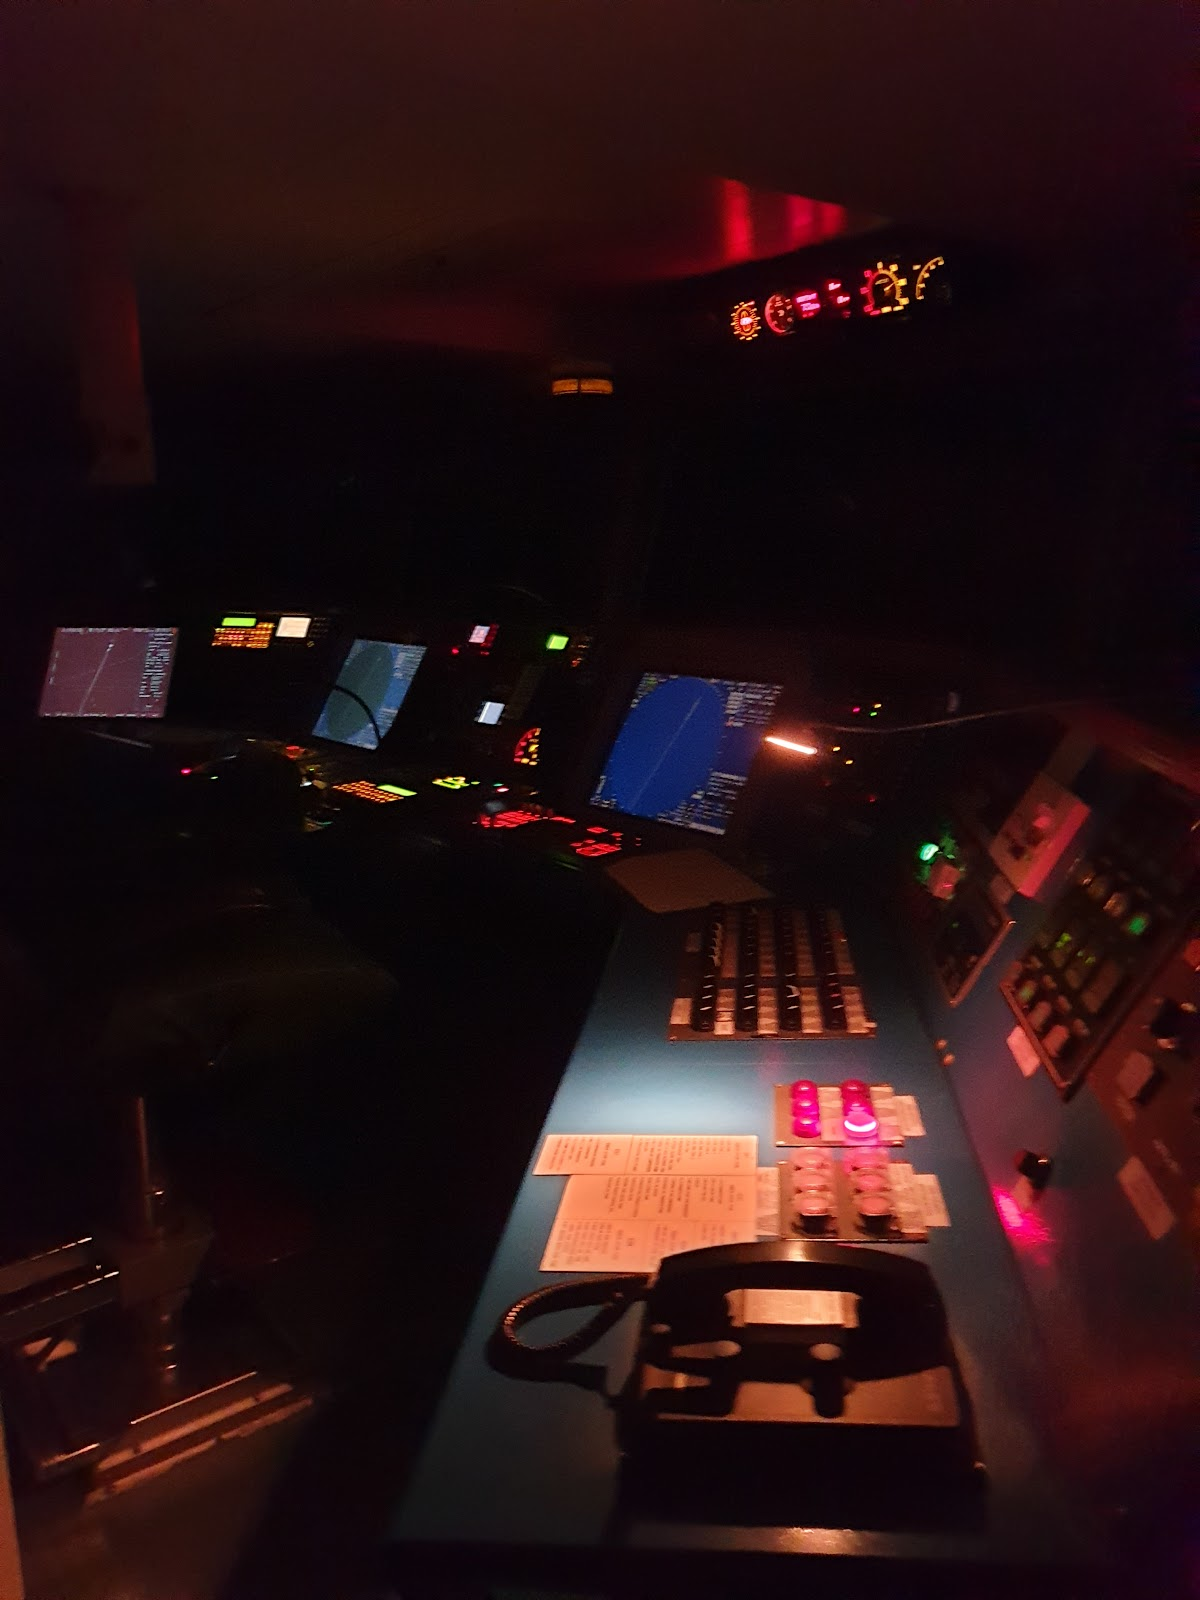 Container ship's control panels at night dimly lit